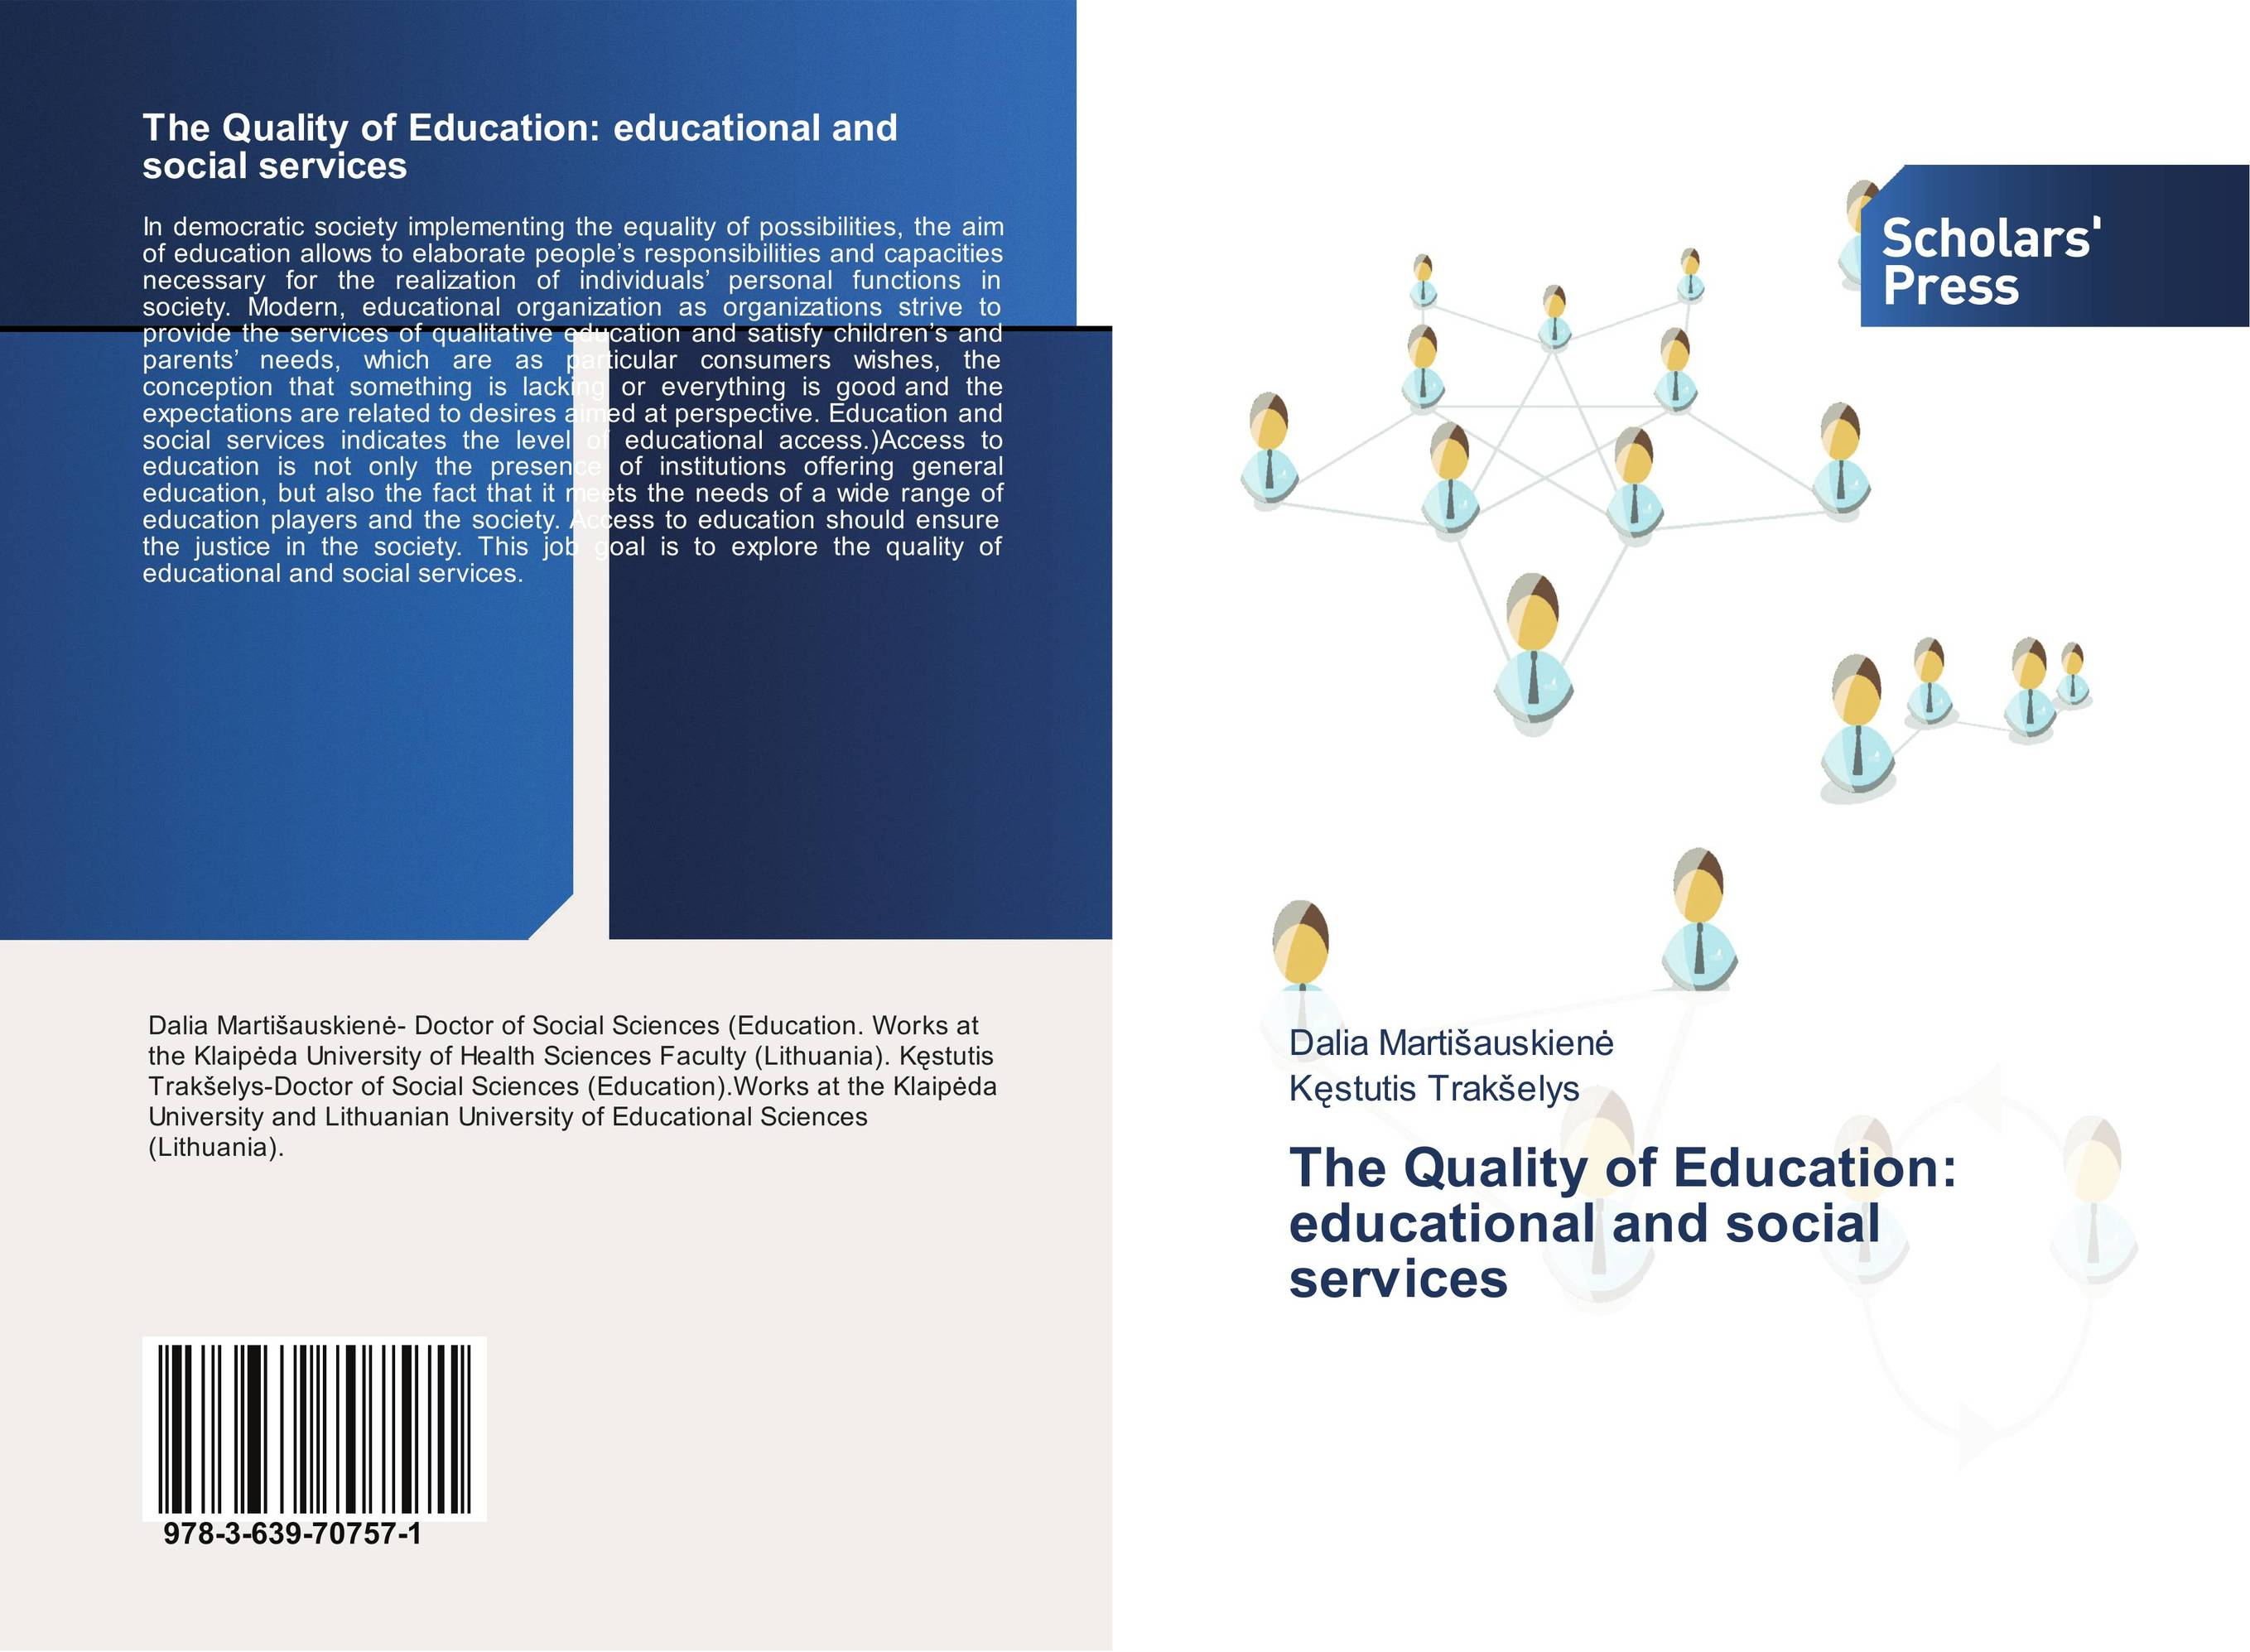 The Quality of Education: educational and social services education special educational needs